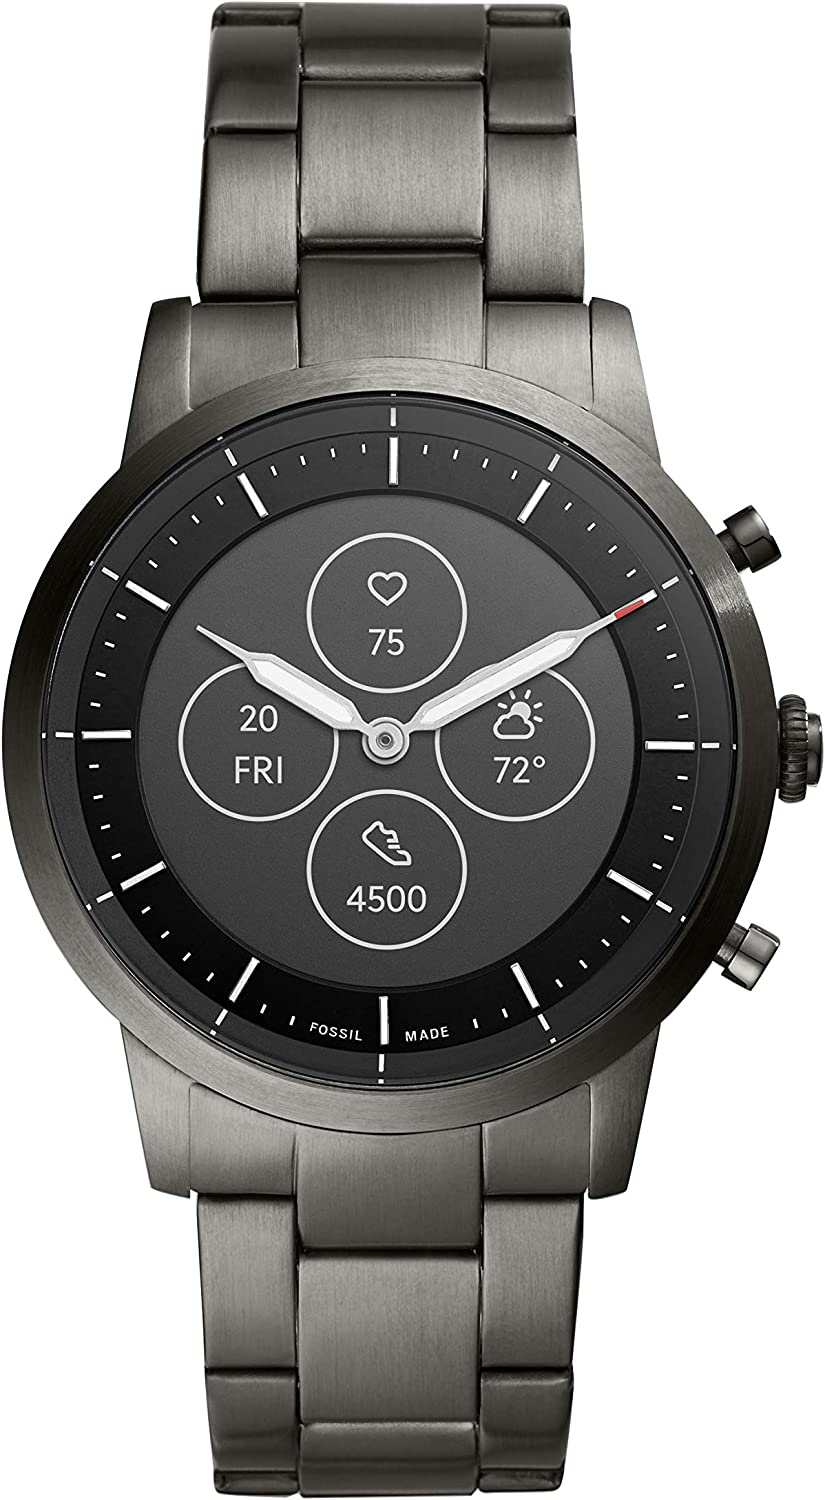 Fossil Men's Hybrid Smartwatch HR with Always-On Readout Display, Heart Rate, Activity Tracking, Smartphone Notifications, Message Previews